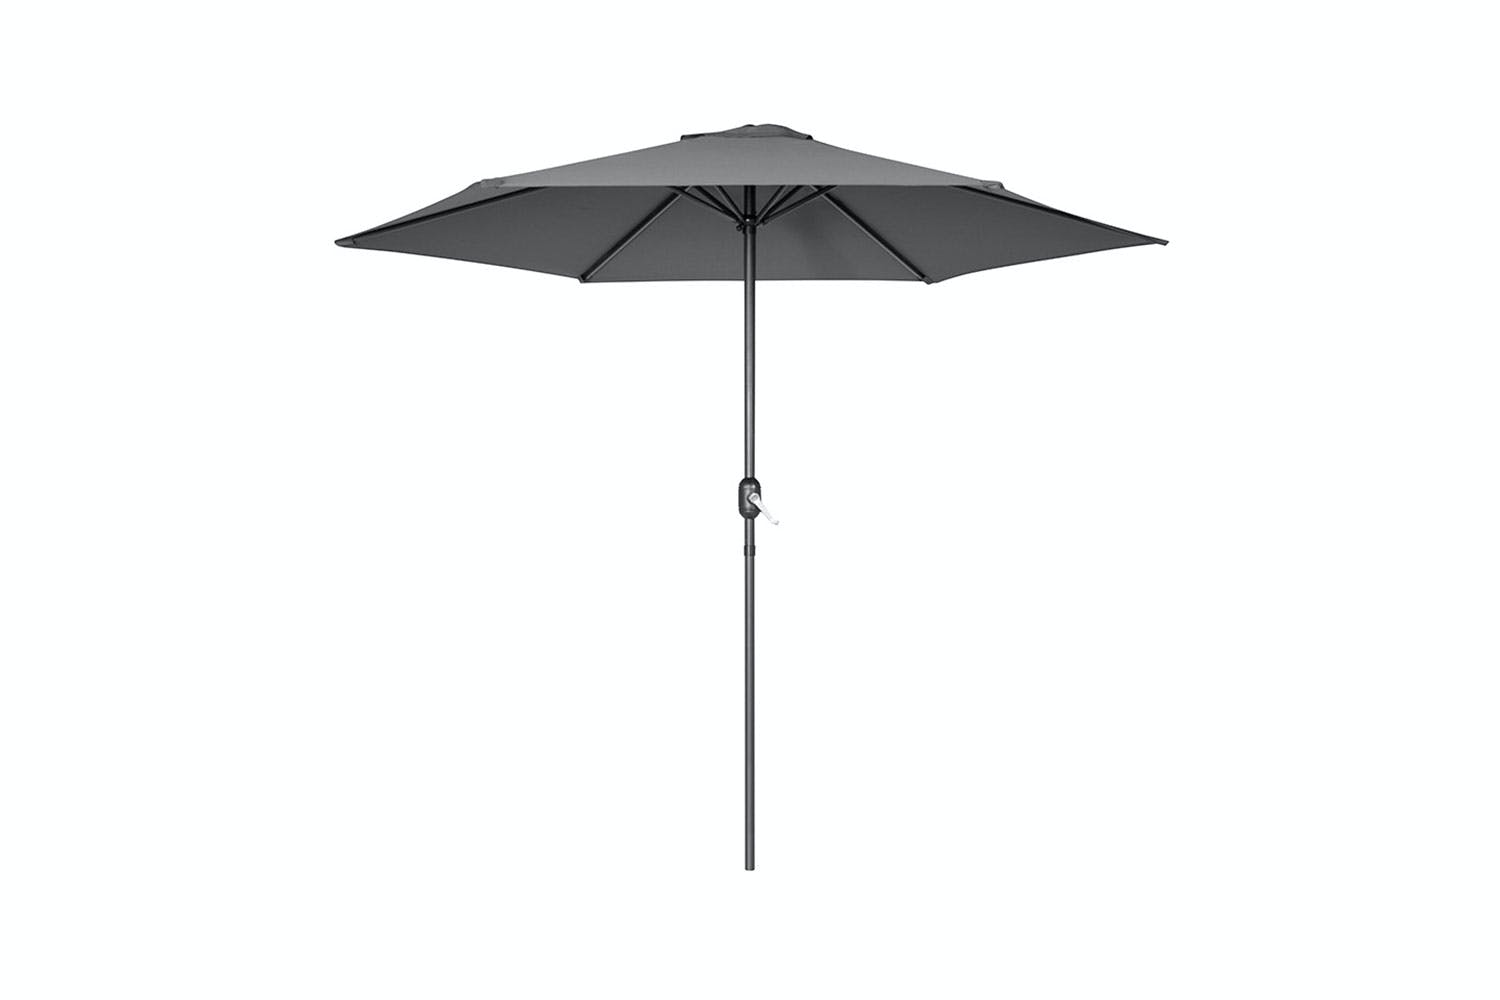 Detroit 2.7M Outdoor Umbrella by Peros - Charcoal